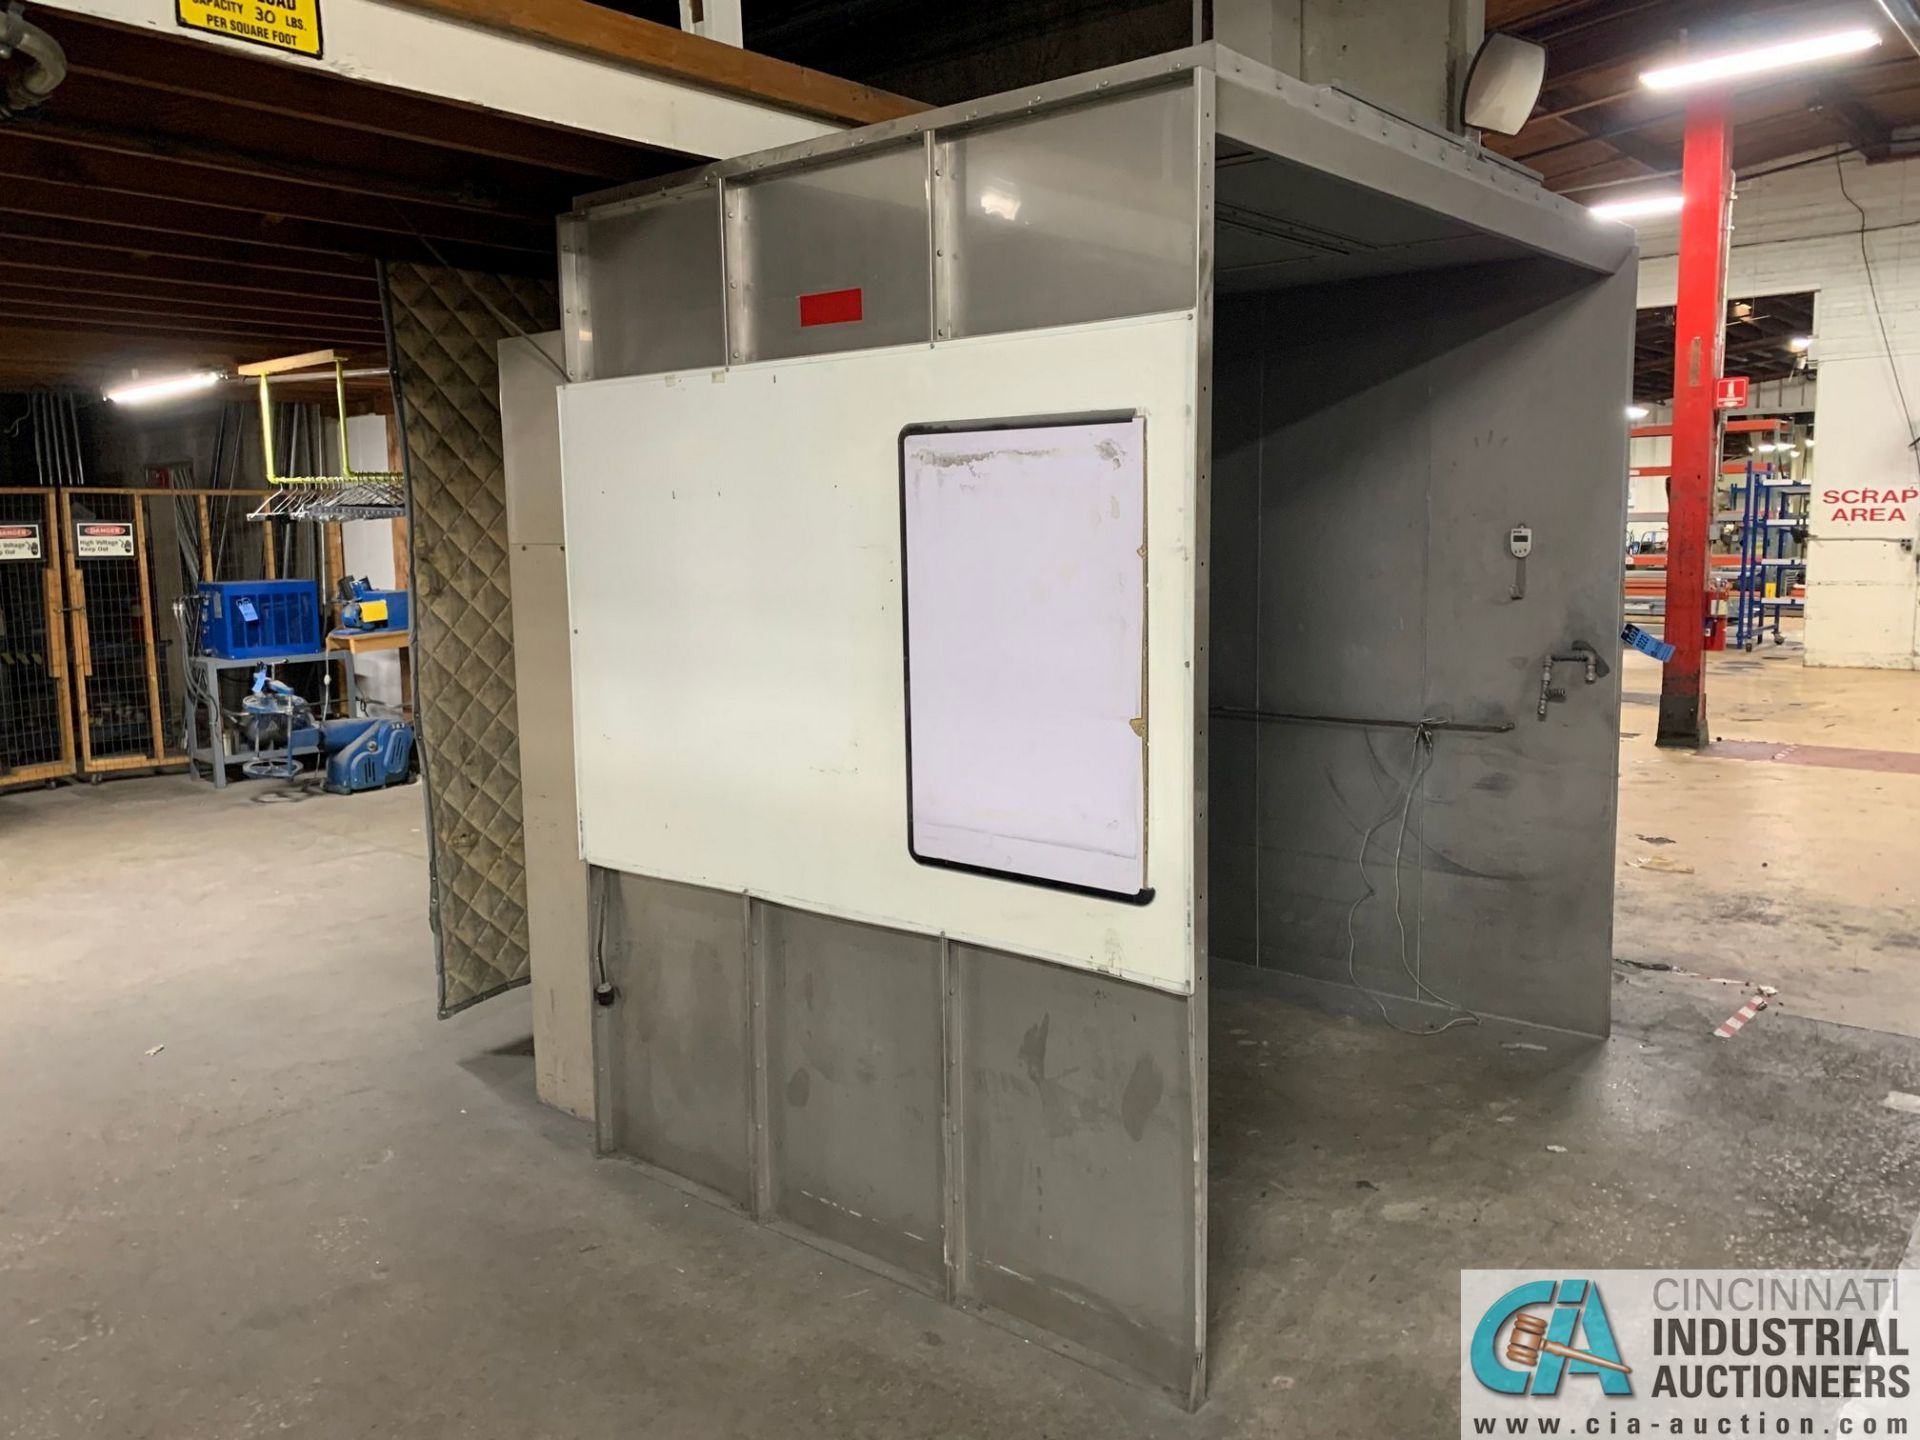 """8' X 6' X 90"""" HIGH (APPROX.) DEIMCO MODEL 3K REAR DRAFT WALK-IN POWDER COAT BOOTH; S/N 0791, WITH - Image 3 of 9"""